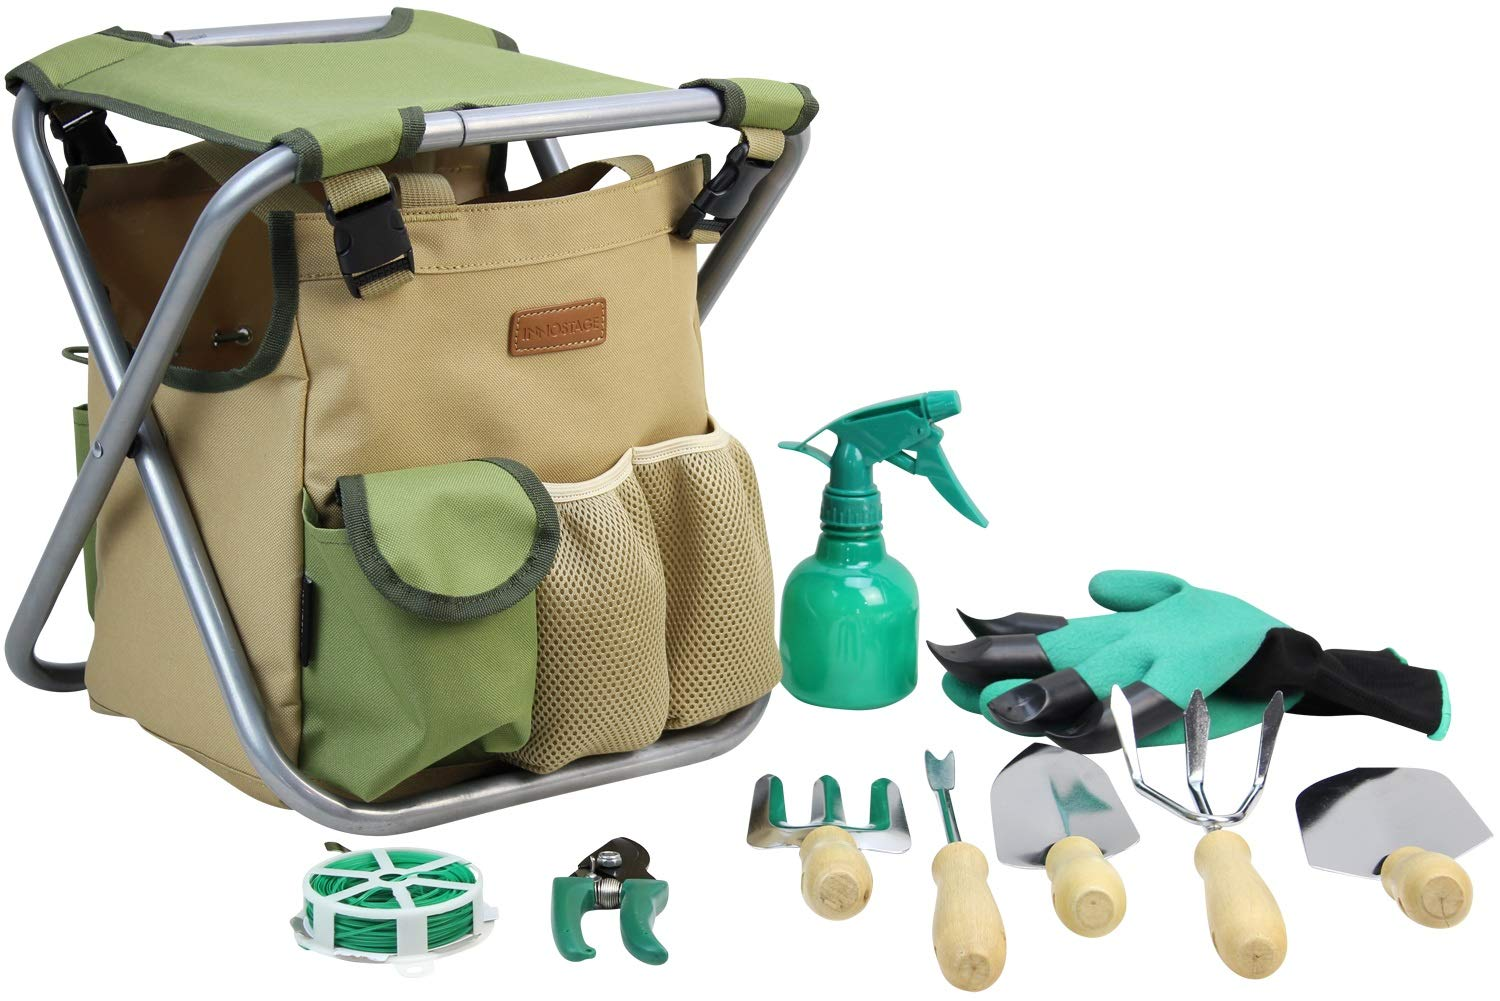 INNO STAGE 10 Piece Gardening Hand Tools Set with Garden Storage Tote Bag and Seat-Best Garden Tools Kit Organizer by INNO STAGE